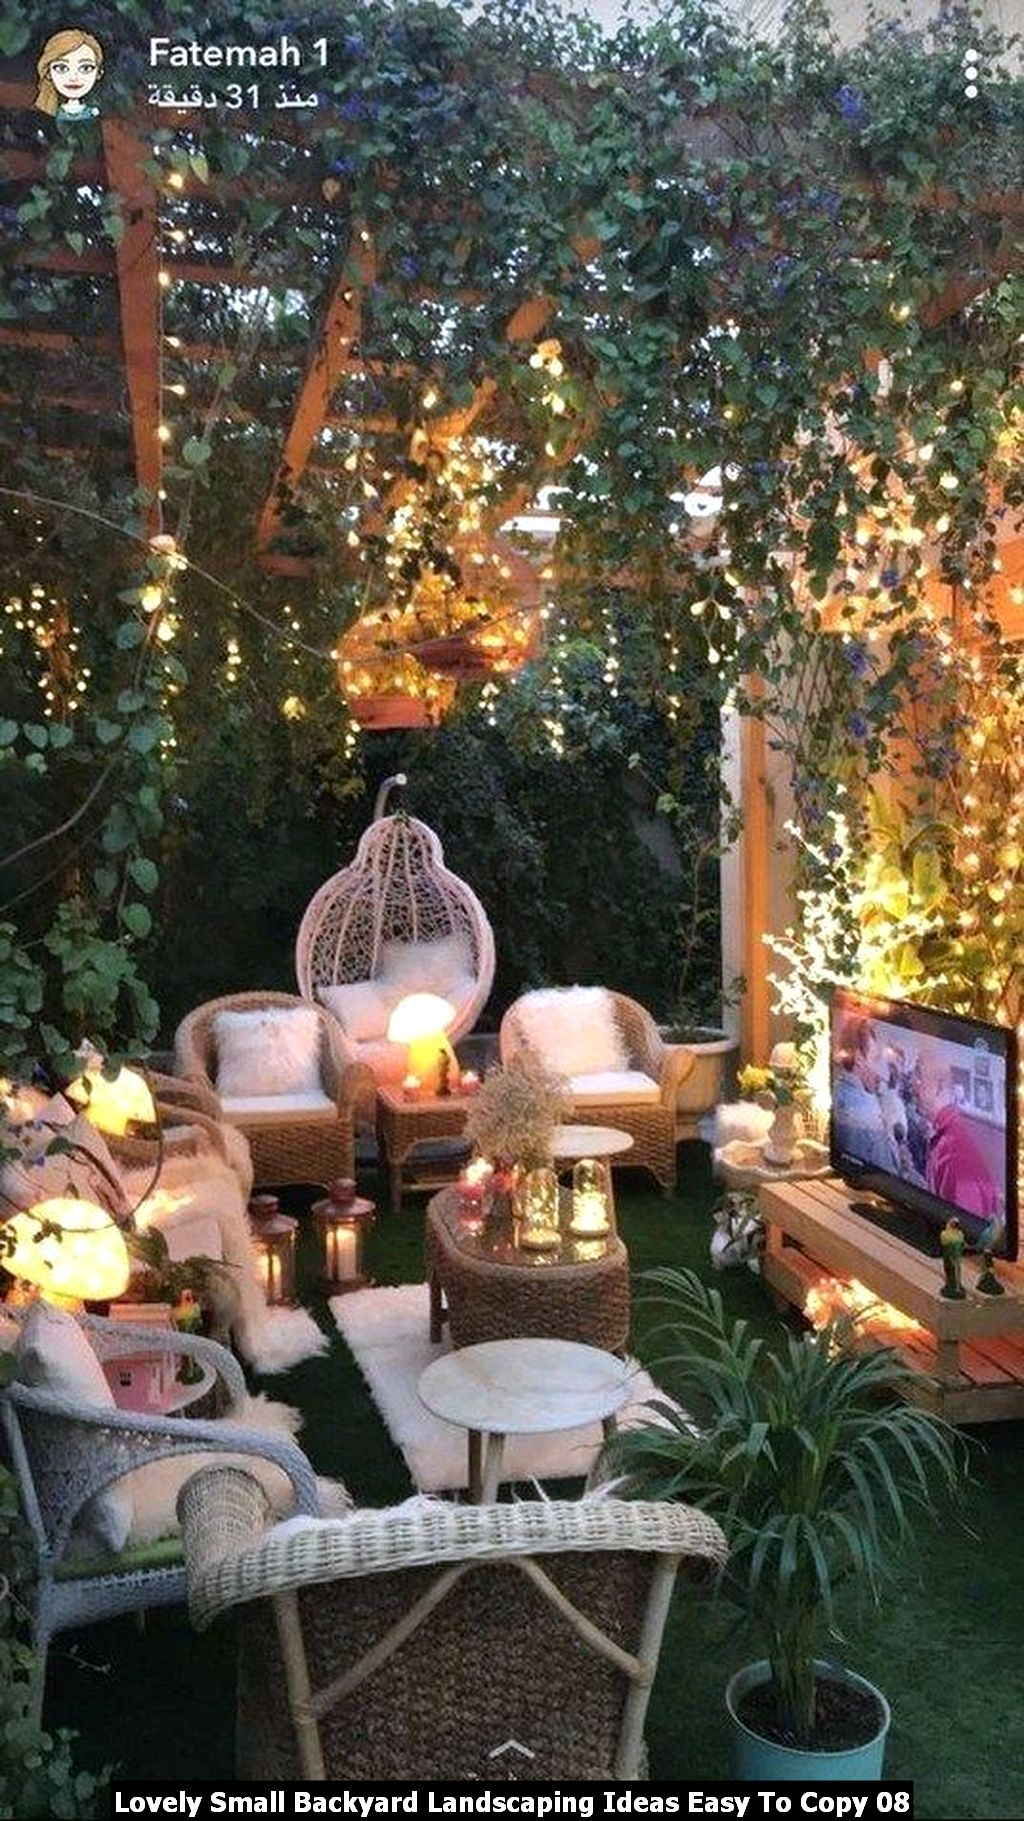 Lovely Small Backyard Landscaping Ideas Easy To Copy 08